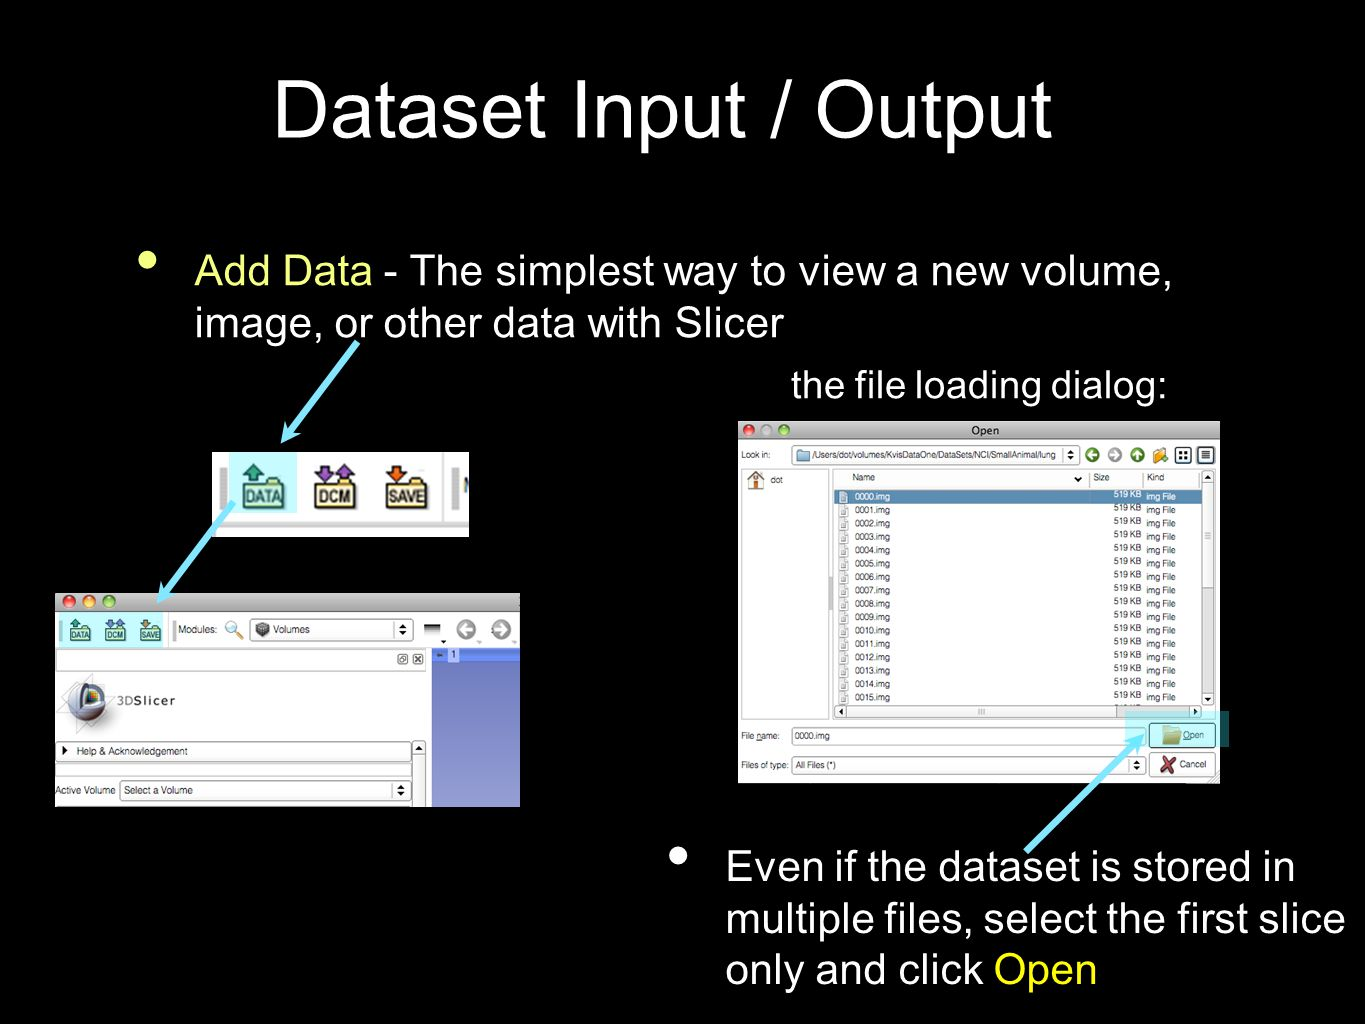 Dataset Input / Output Add Data - The simplest way to view a new volume, image, or other data with Slicer Even if the dataset is stored in multiple files, select the first slice only and click Open the file loading dialog: